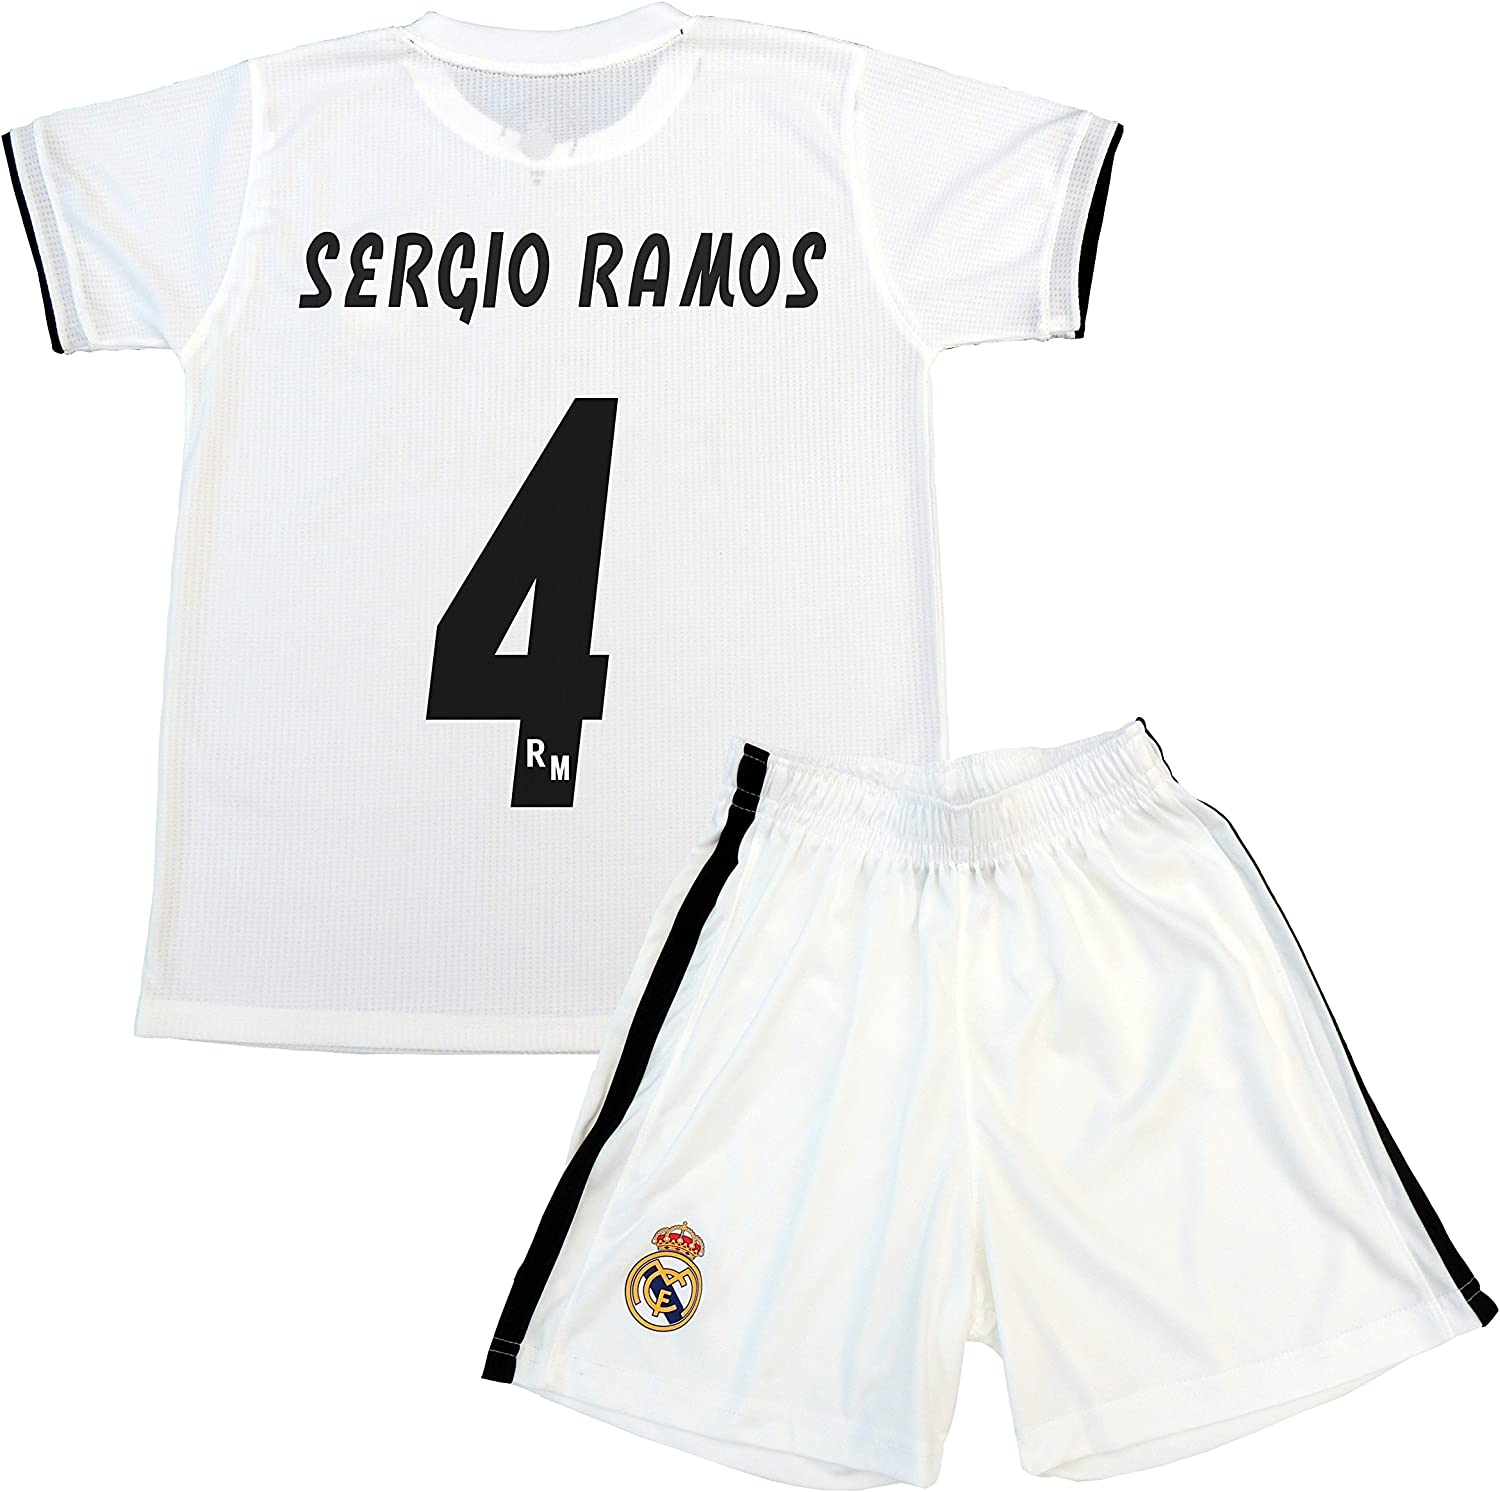 Tshirt and pants set 1st kit Real Madrid 20182019  Replica with a License  Dorsal 4 SERGIO RAMOS  Boys size 10 years  Measures Chest 43.5  Total Lenght 59  Sleeve Lenght 16 cm.